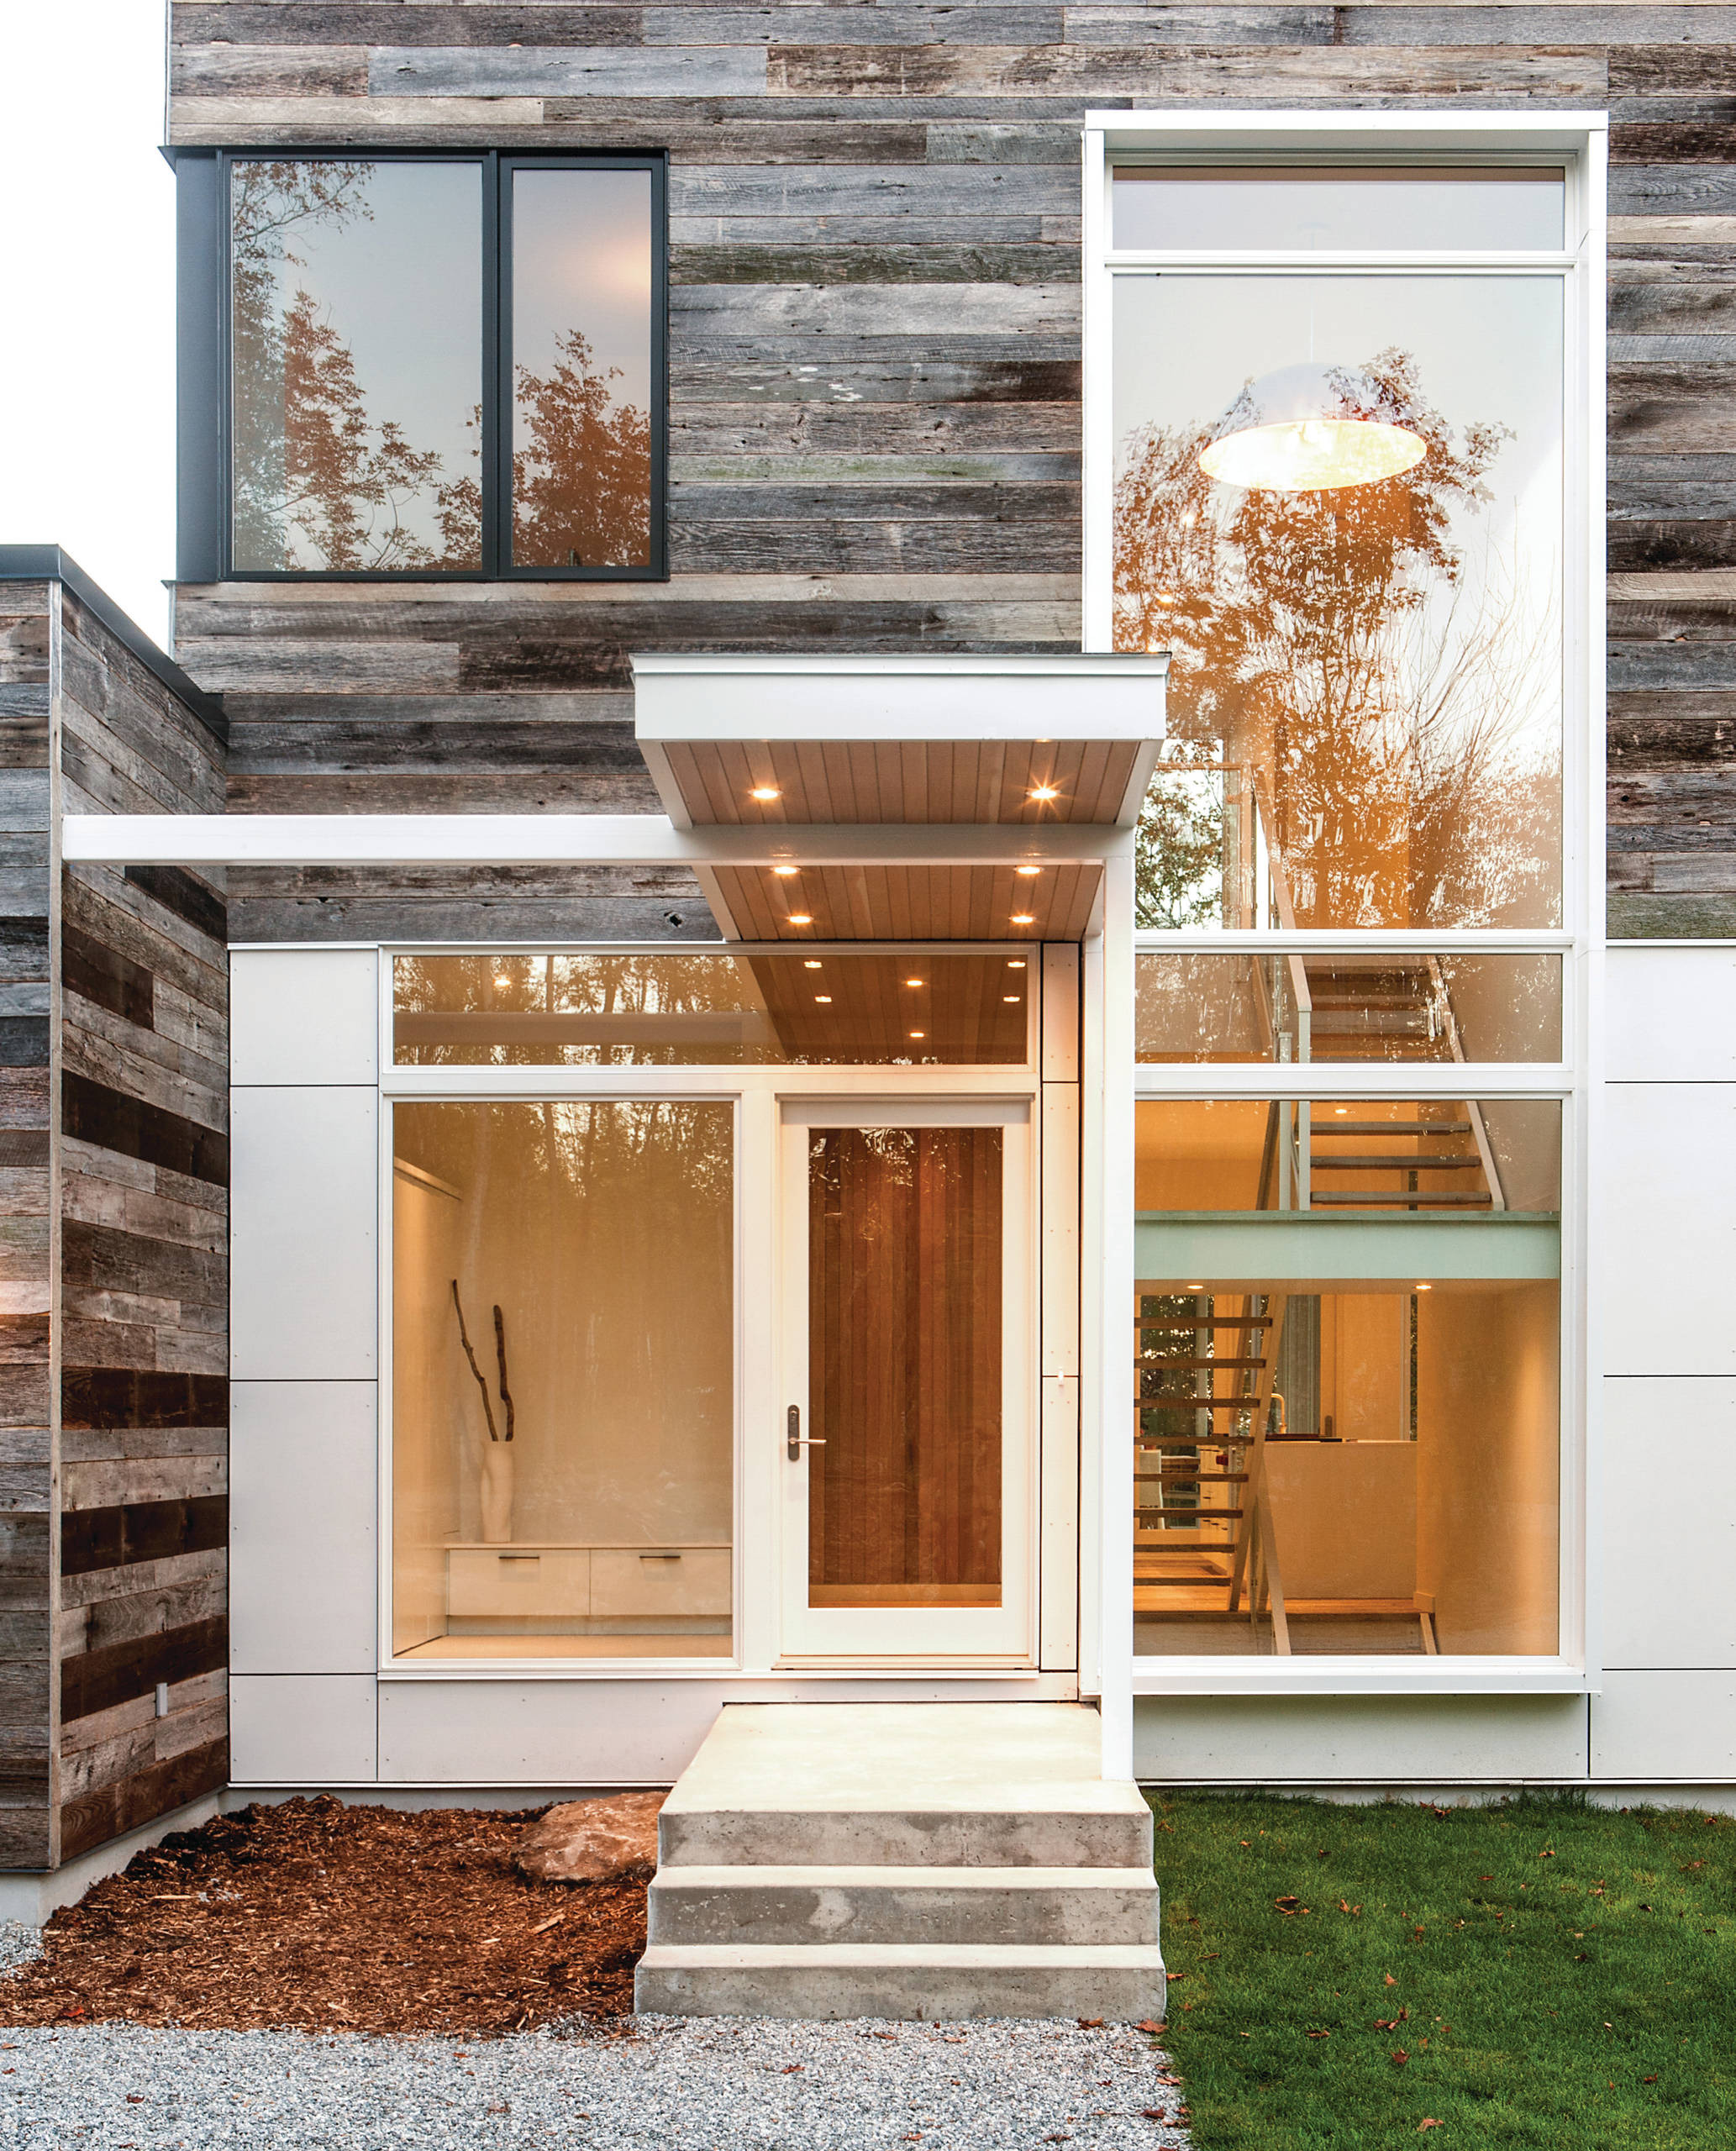 16 Enchanting Modern Entrance Designs That Boost The Appeal The Home 9